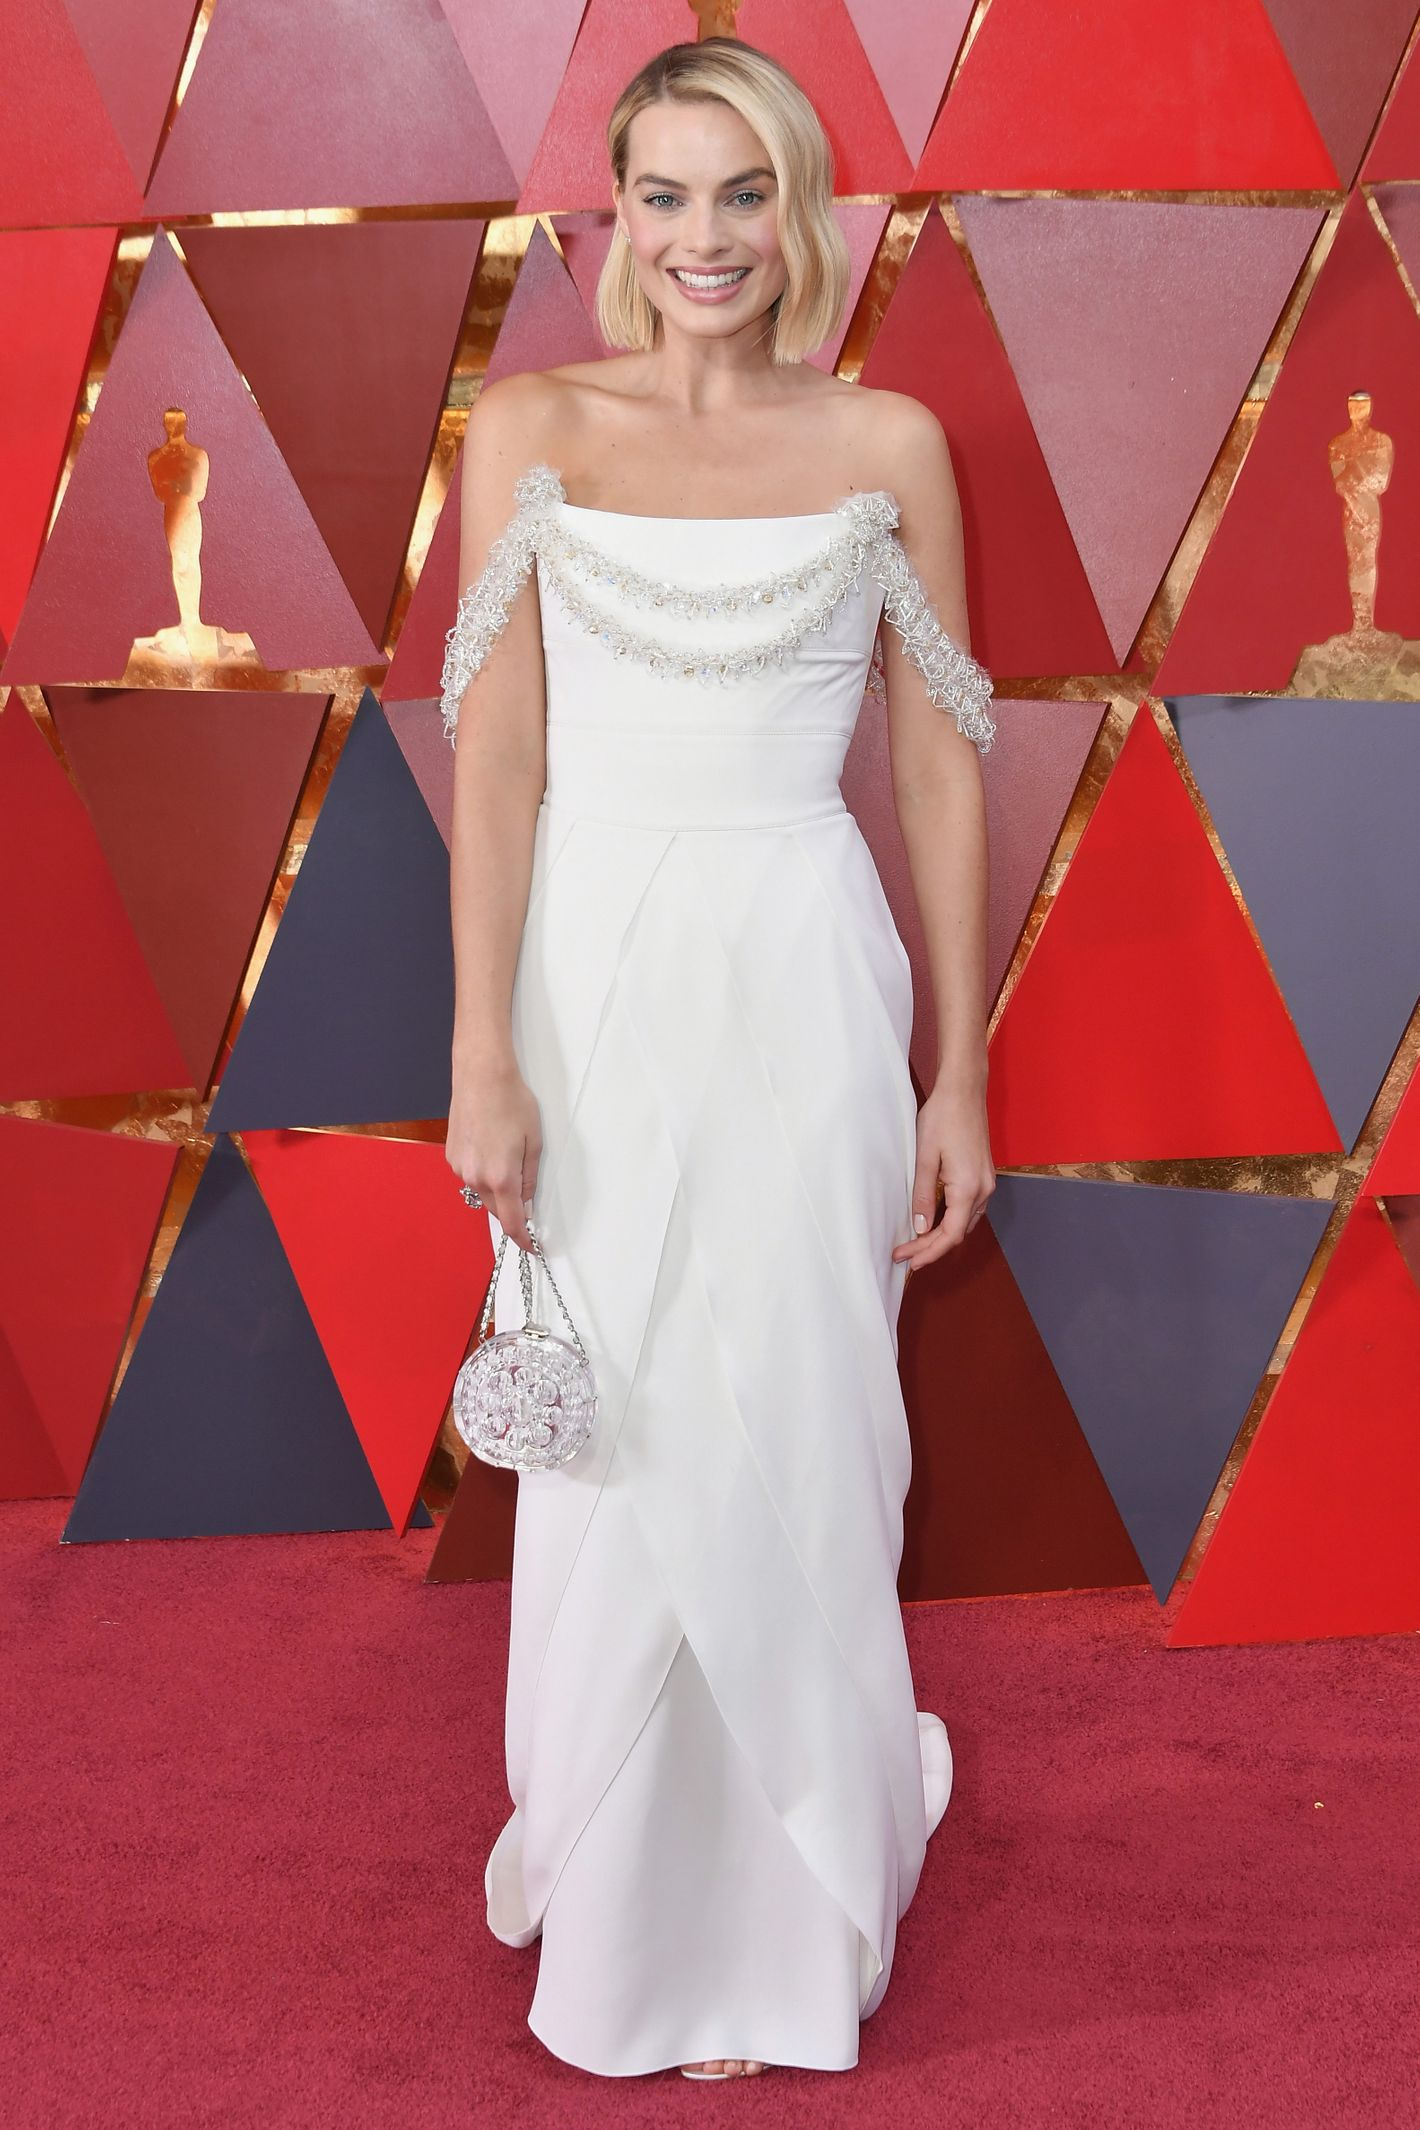 Oscars 2018: All the Red-Carpet Looks - Vulture Oscars 2018 fashion photo gallery